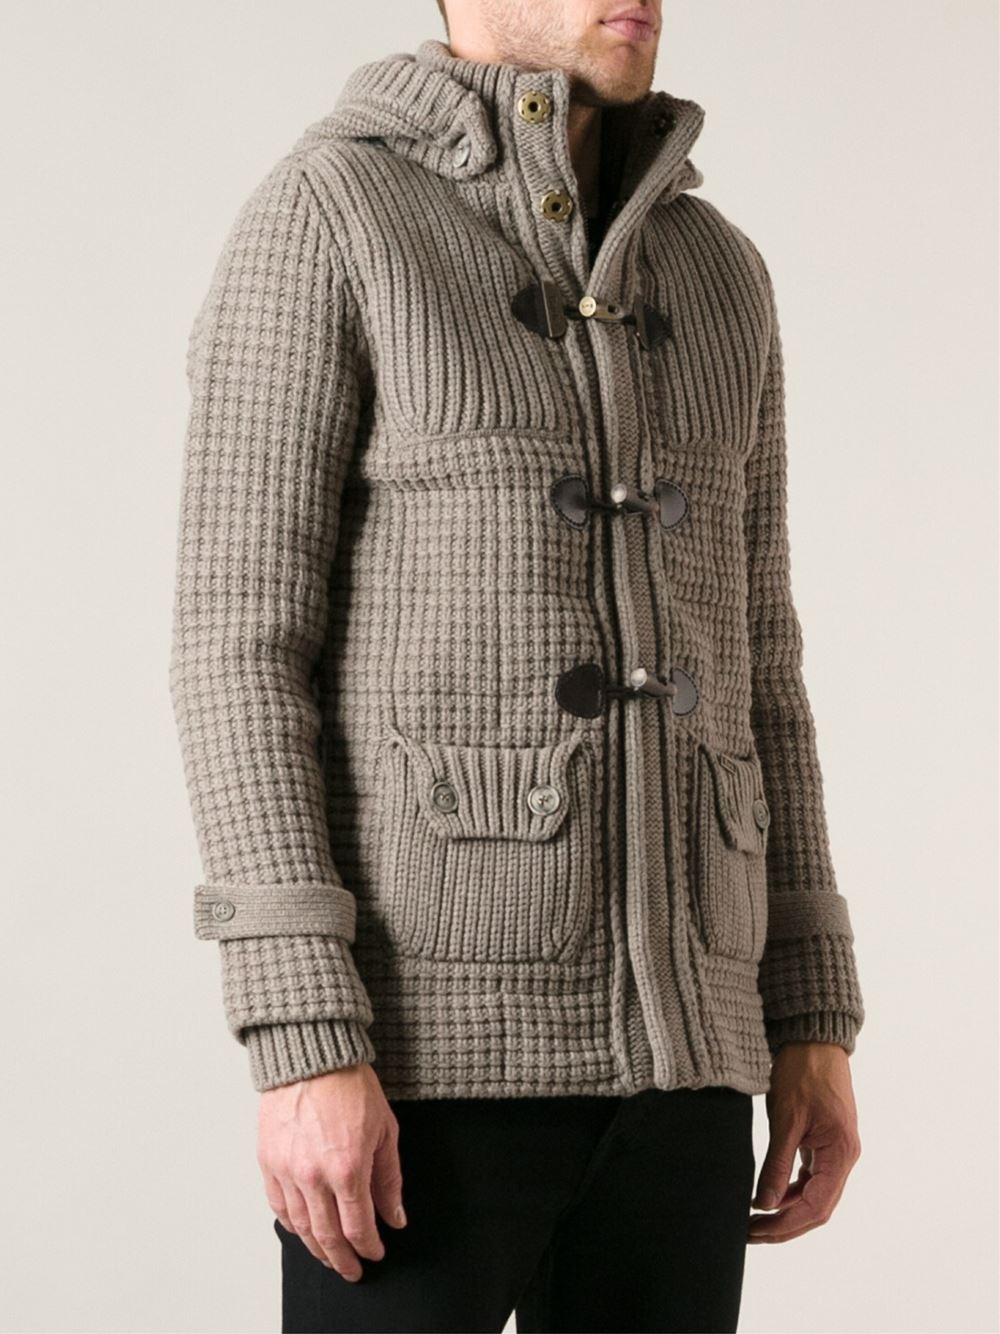 Bark Knitted Duffle Coat in Brown for Men | Lyst